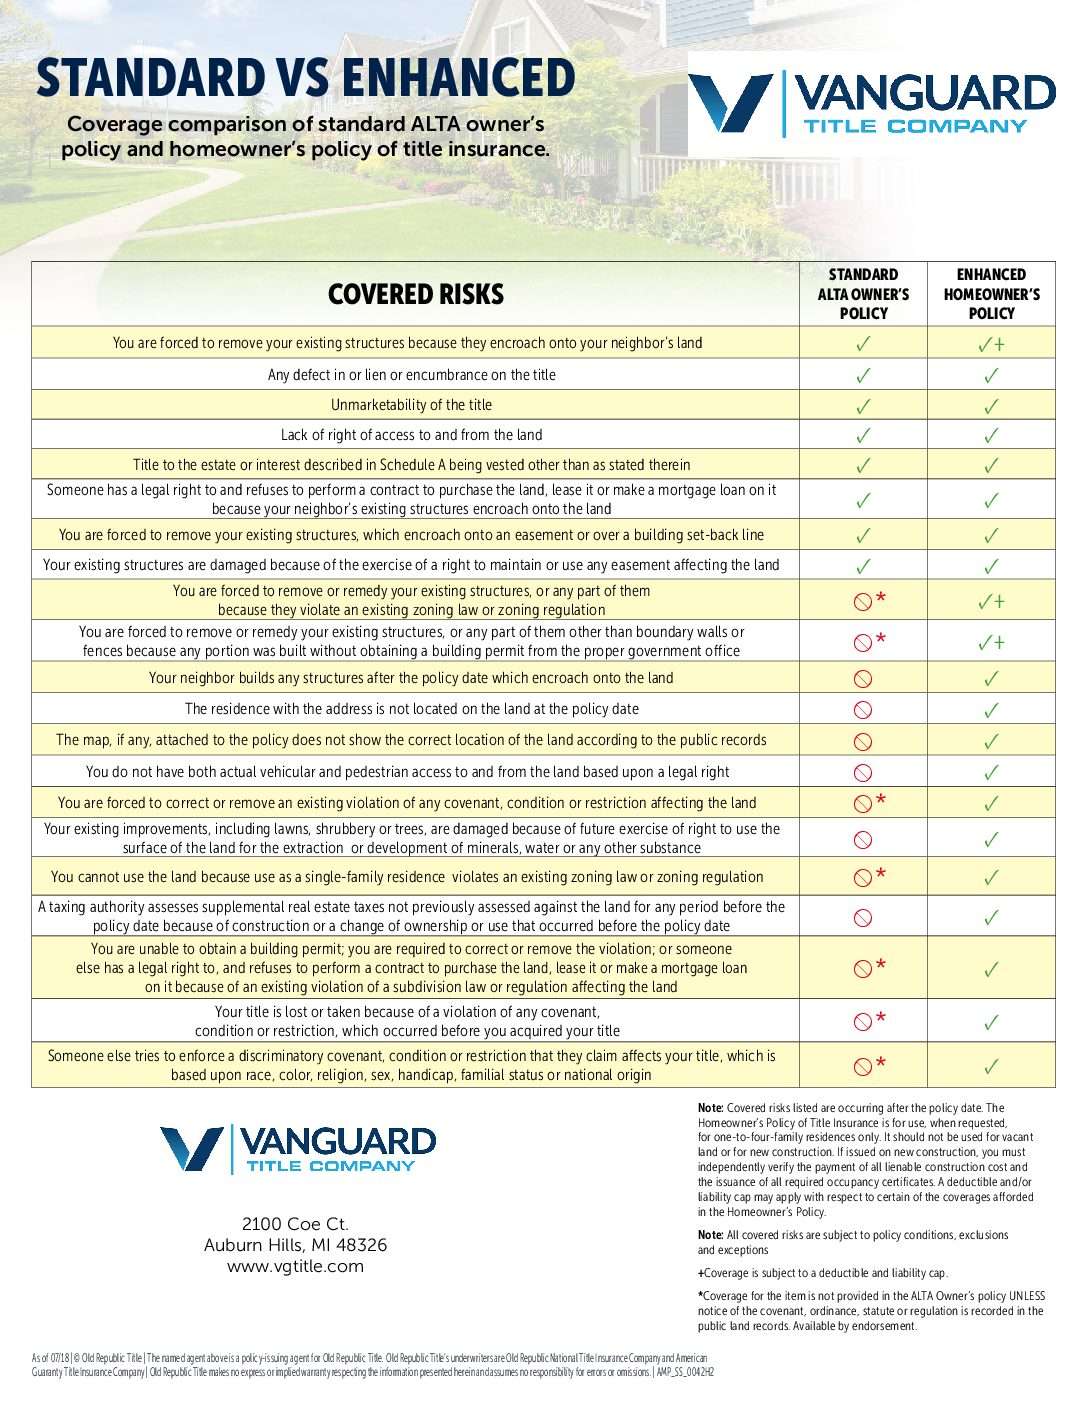 Coverage comparison of standard ALTA owner's policy and homeowner's policy of title insurance